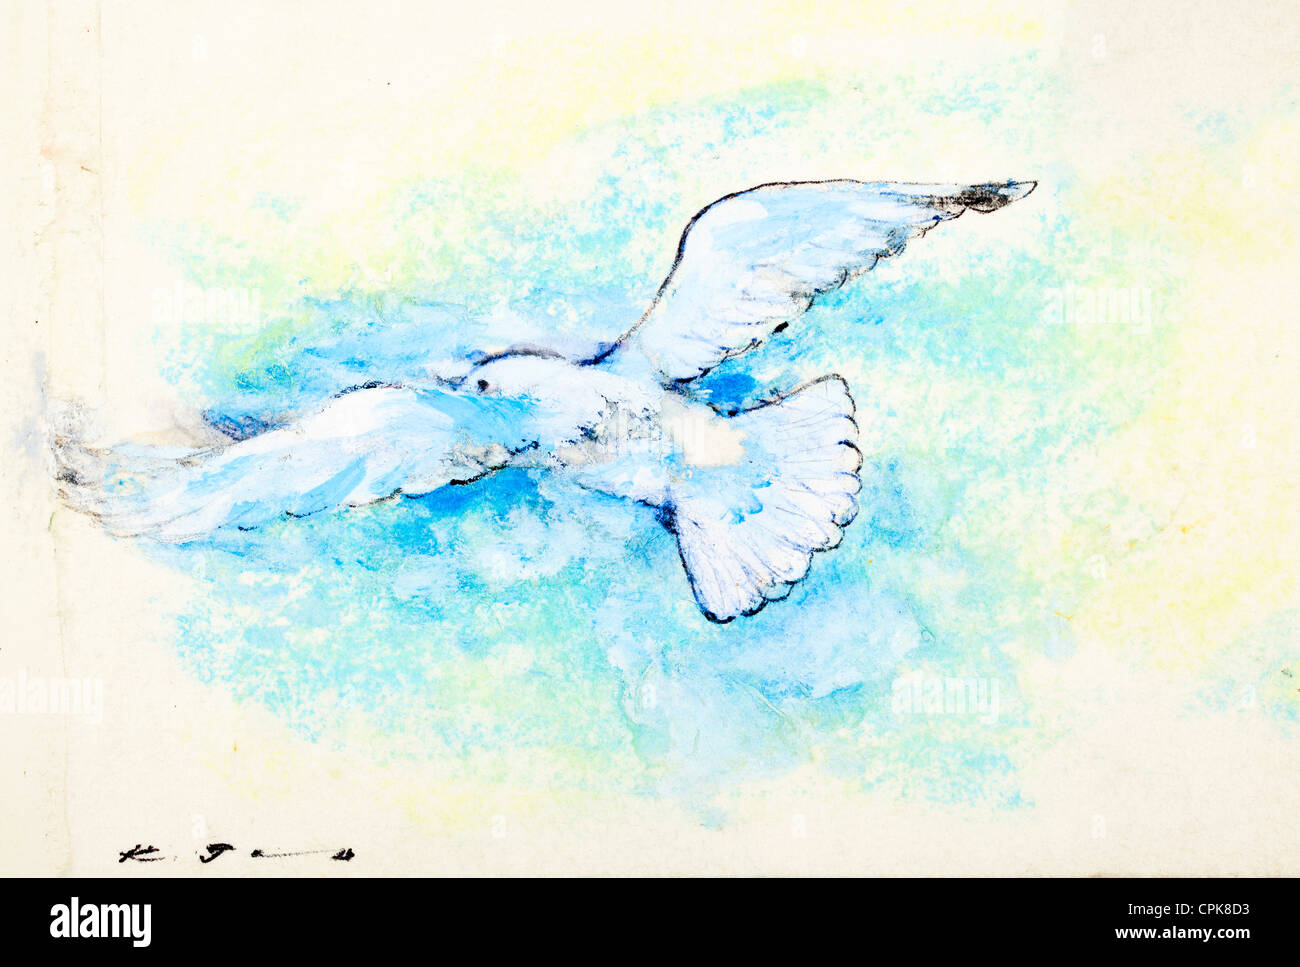 White dove - pastel chalk on paper by Kurt Tessmann - Stock Image